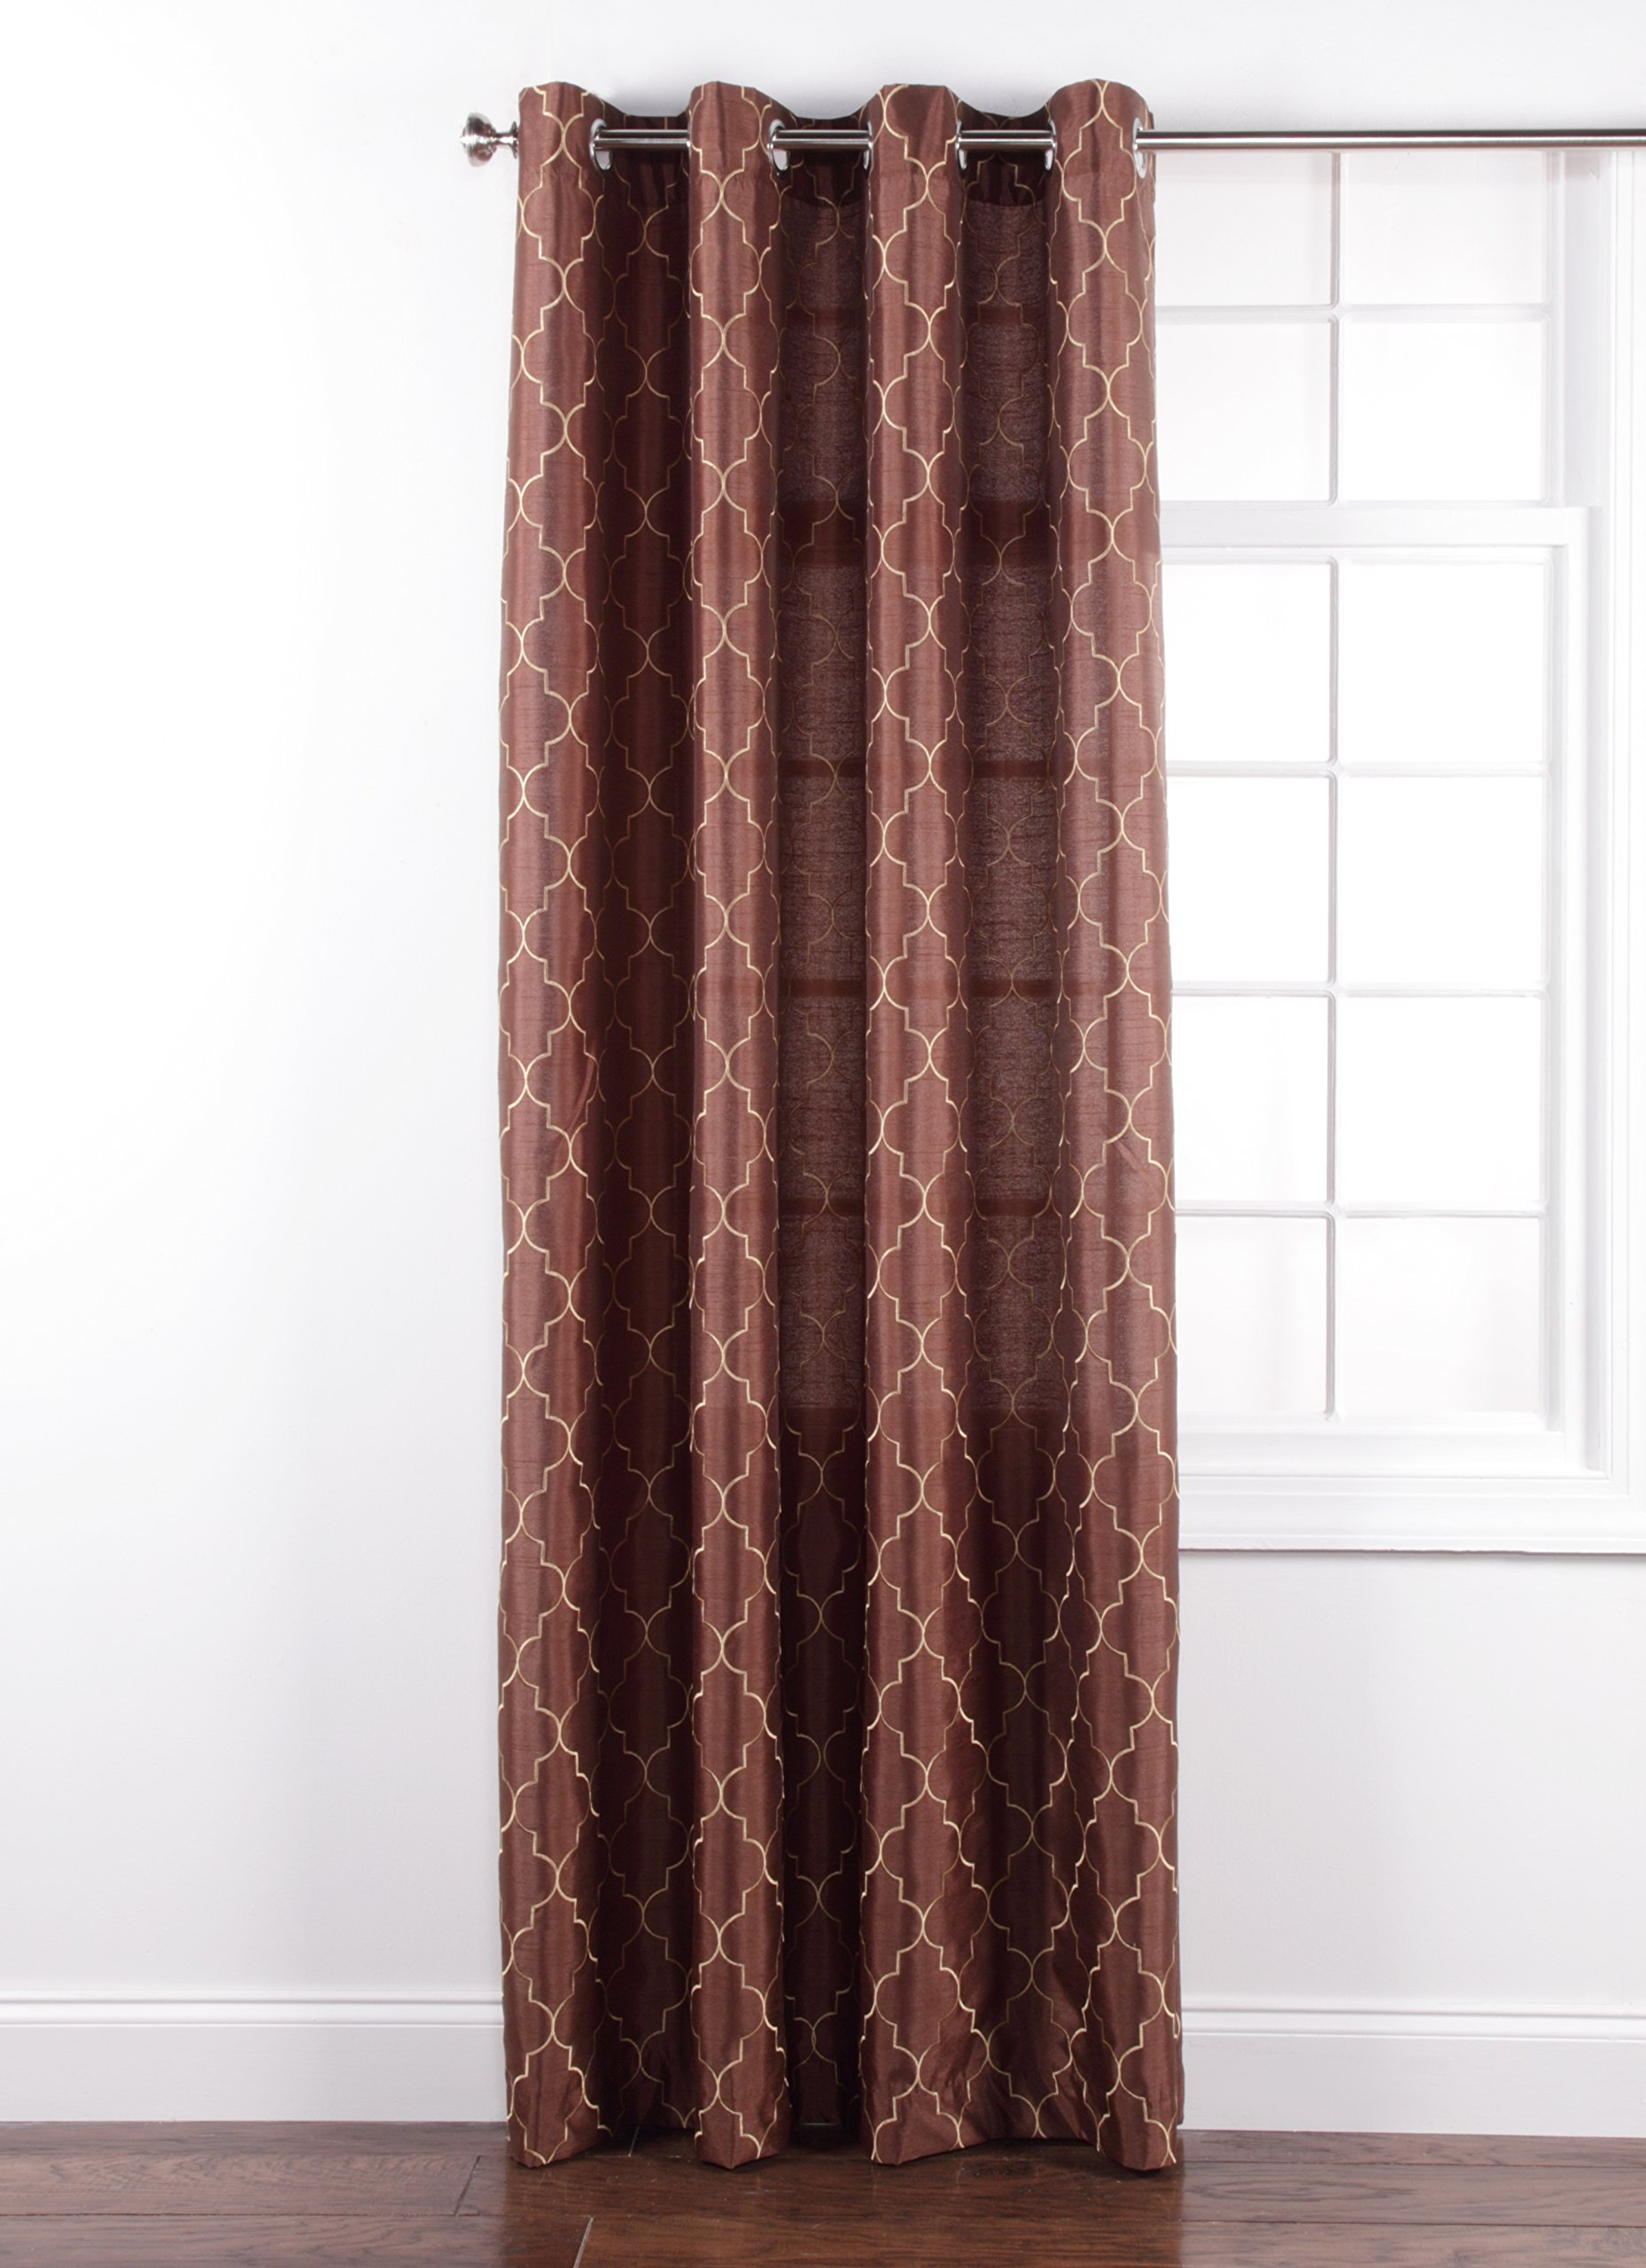 Stylemaster Hudson 55 by 84-Inch Embroidered Faux Silk Silver Grommet Panel, Espresso - 4 attractive colors: espresso, spa, turquoise, vanilla Easy care machine wash cold and line dry Imported from china - living-room-soft-furnishings, living-room, draperies-curtains-shades - 81534WI0Q4L -